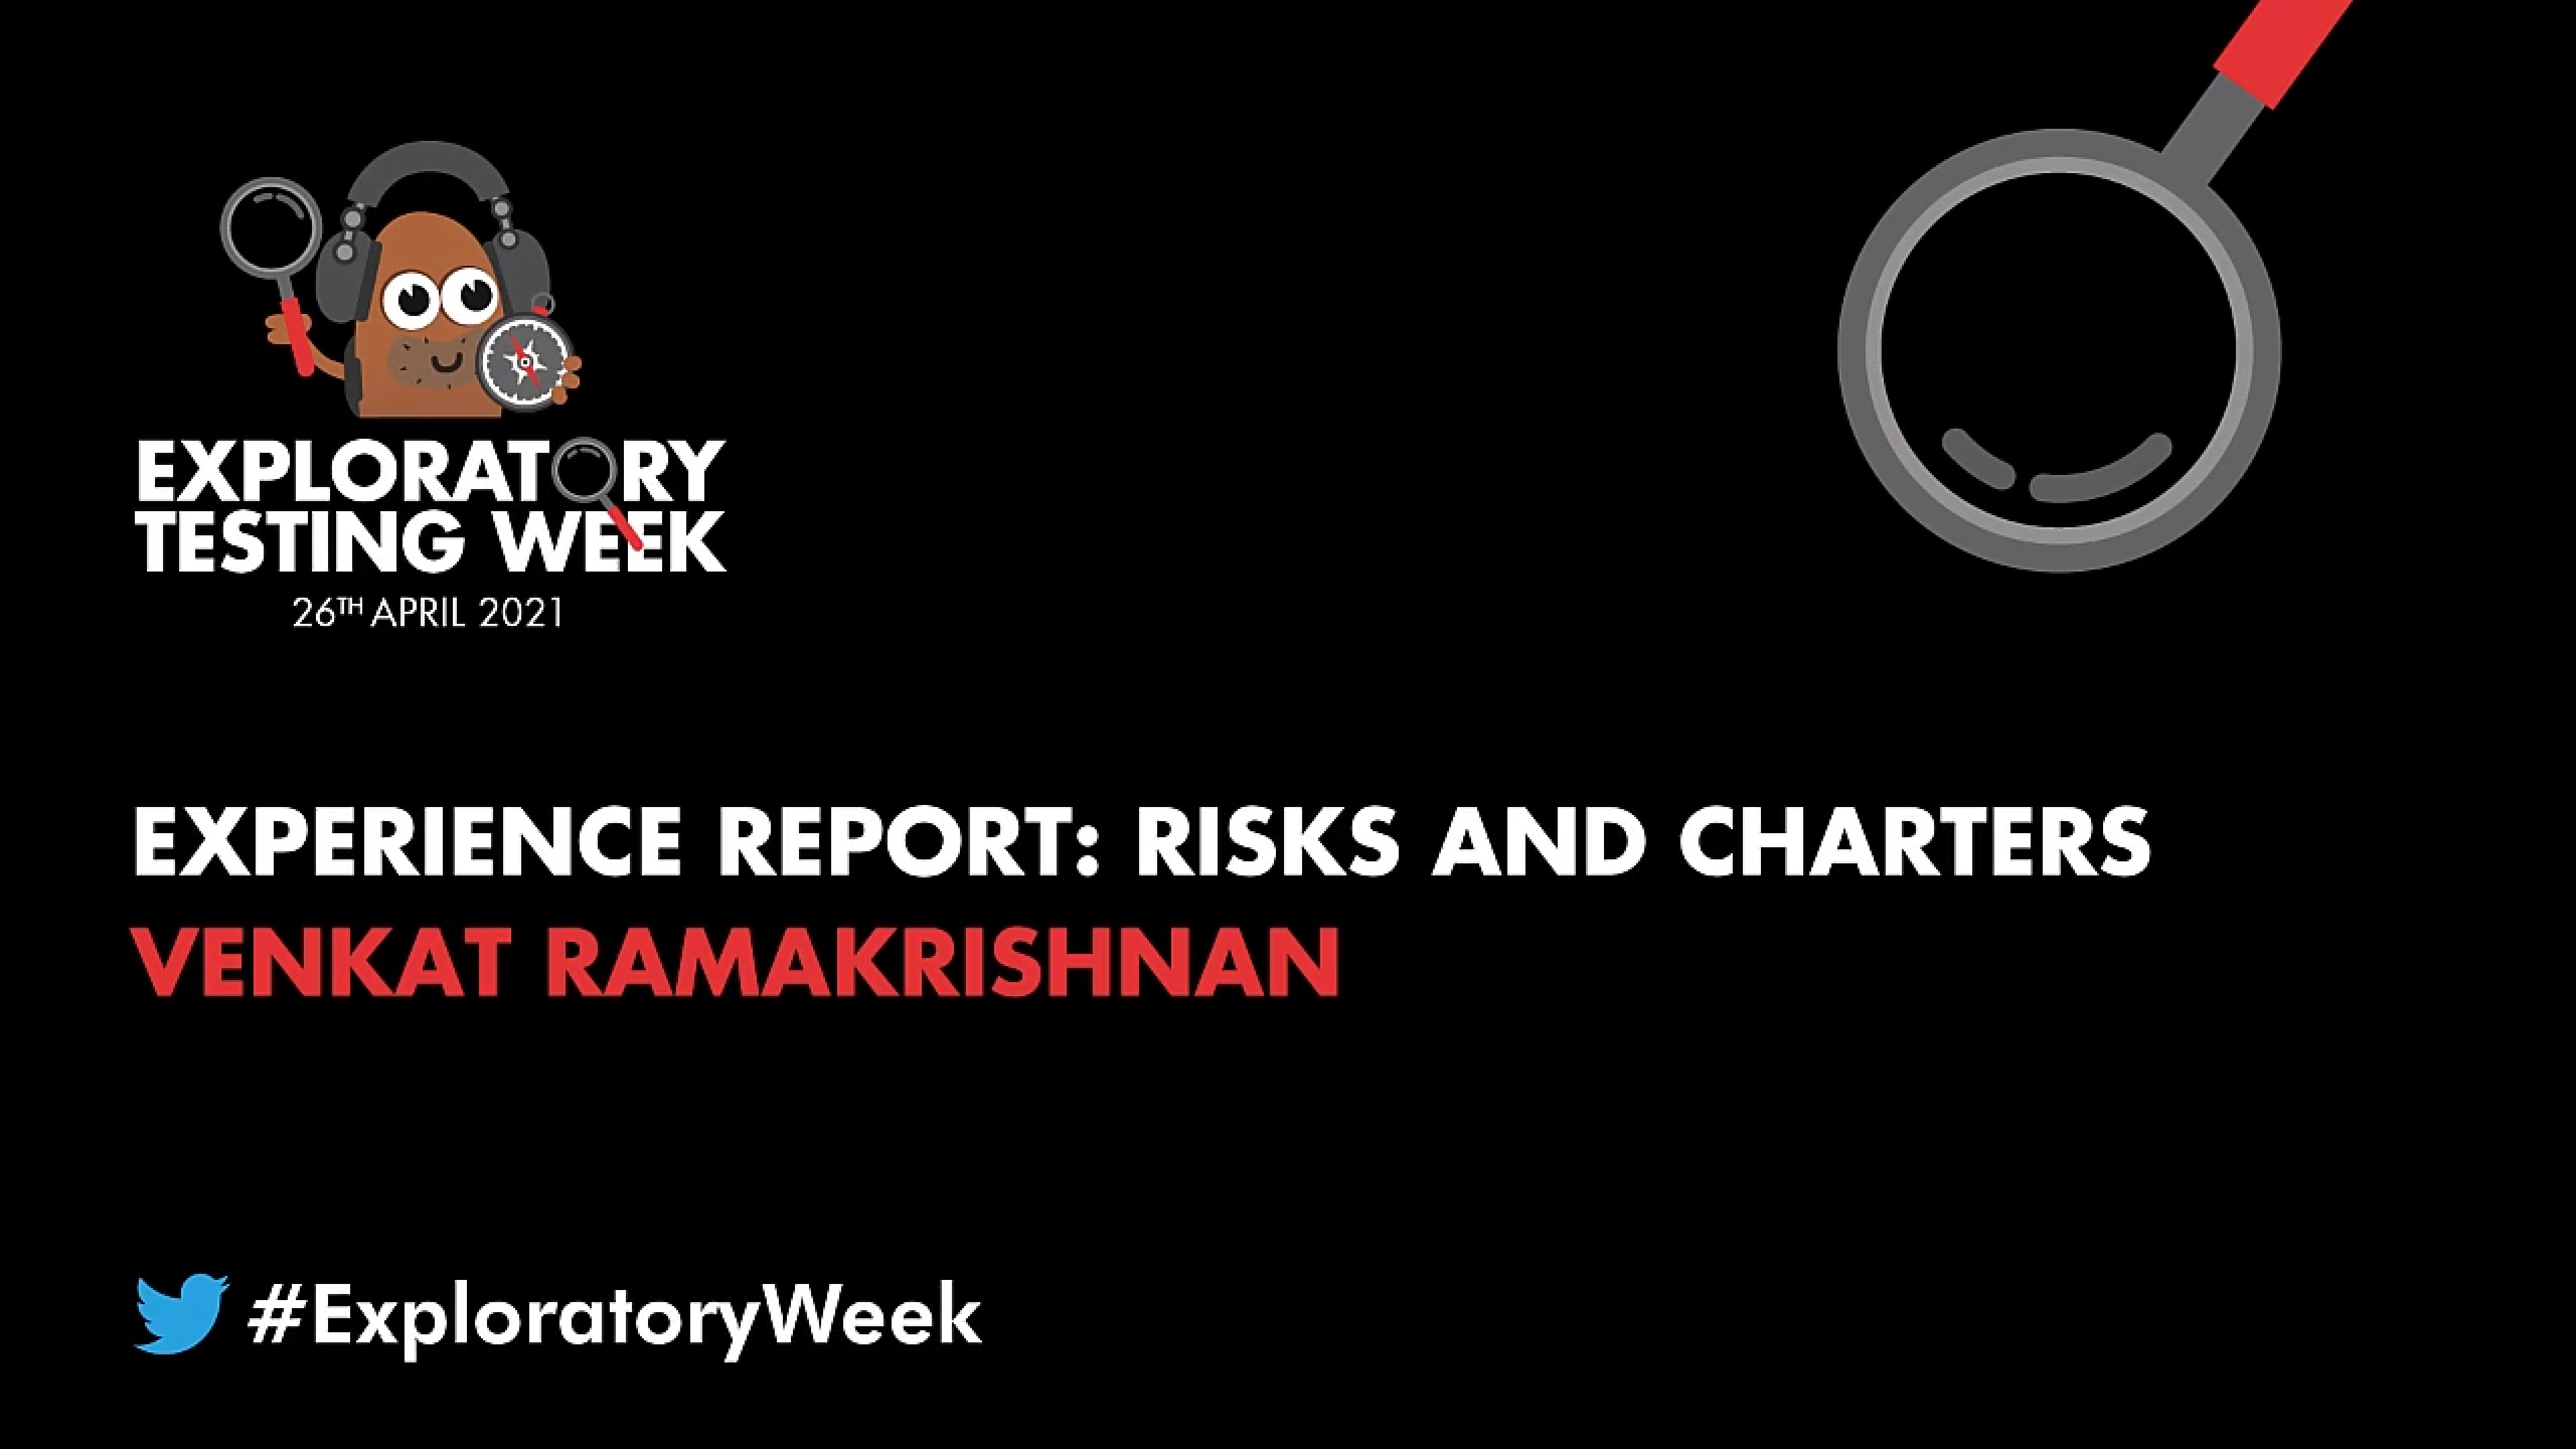 Experience Report: Risks and Charters with Venkat Ramakrishnan